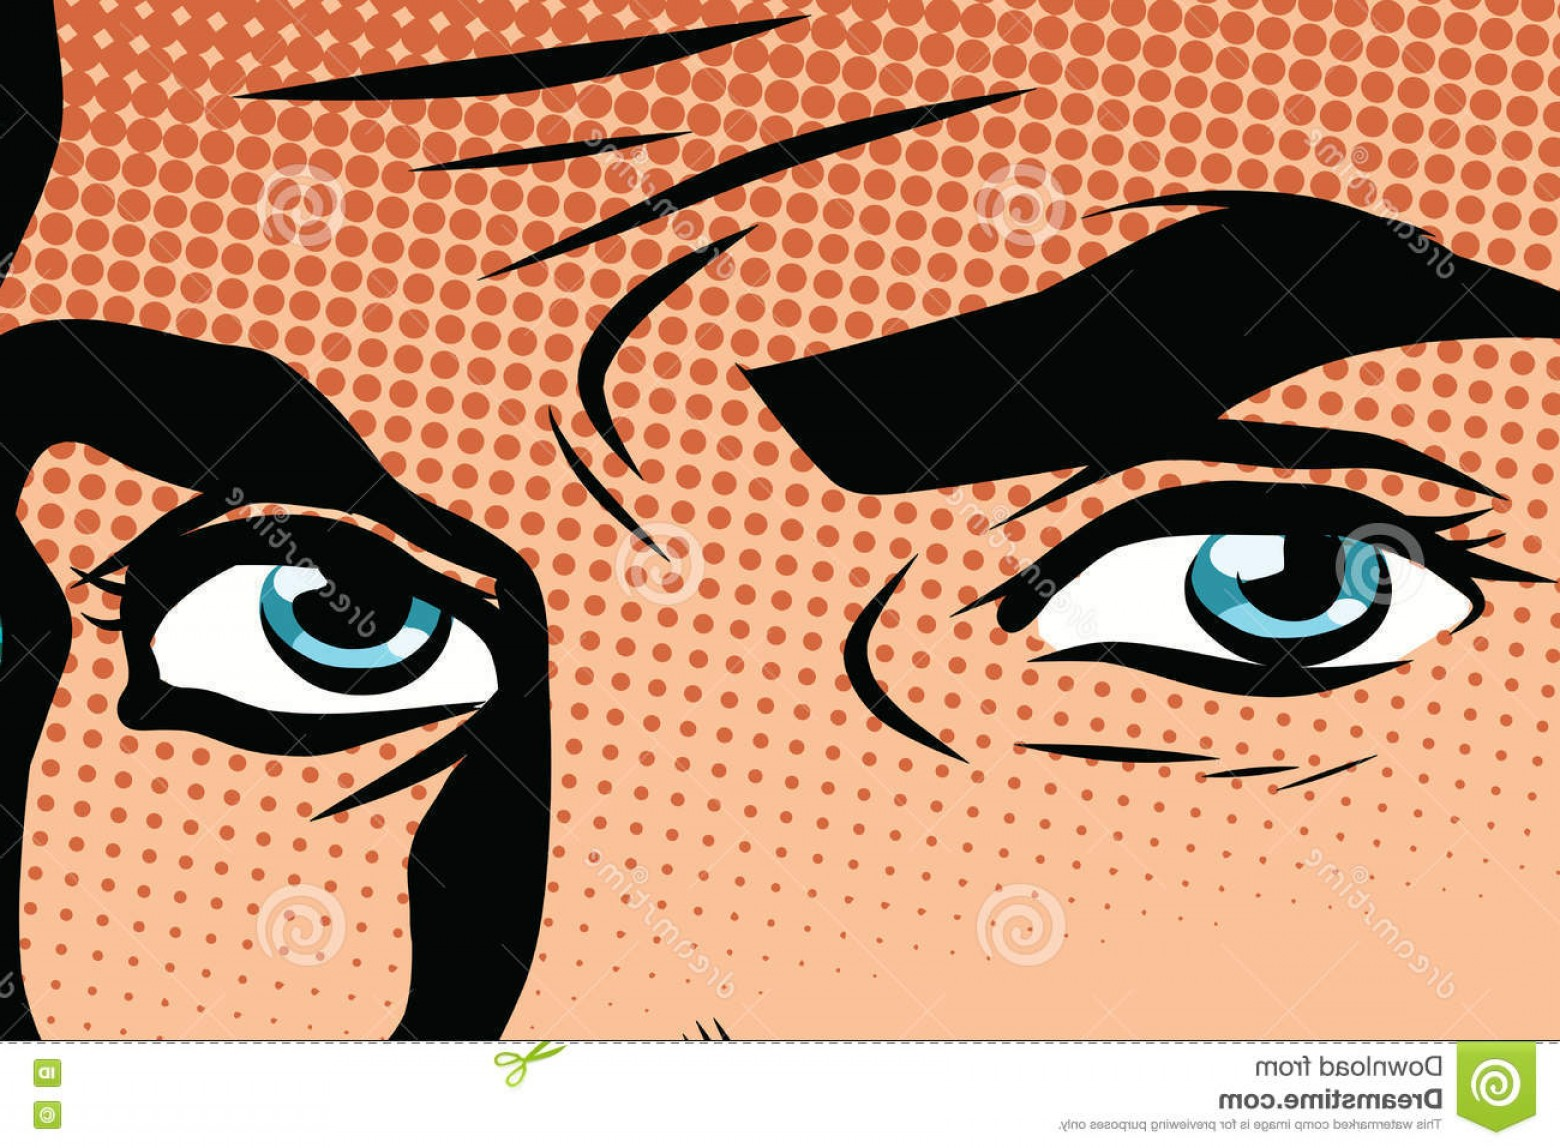 Male Eyes Vector Graphic: Stock Illustration Retro Male Blue Eyes Pop Art Vector Look Man Illustration Eye Color Vector Image